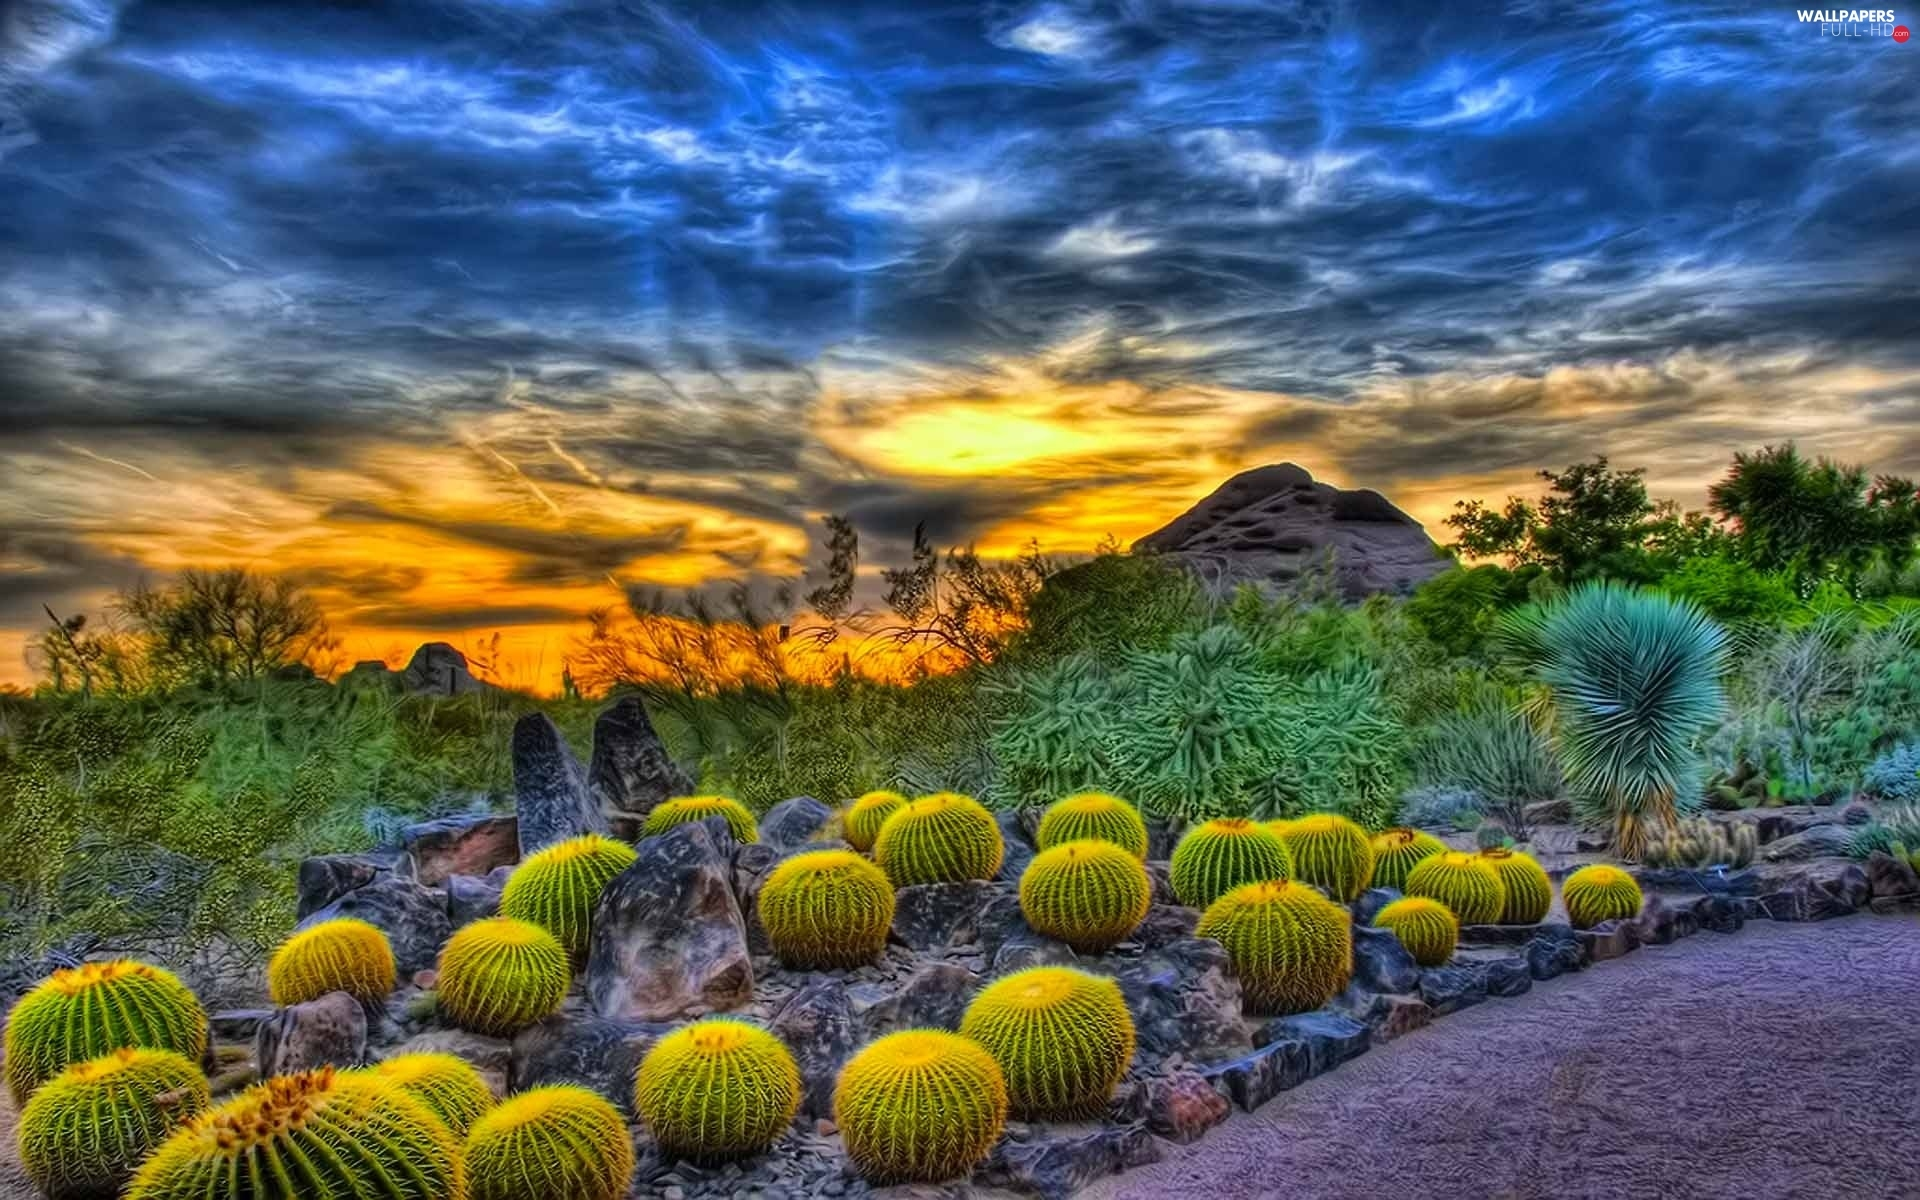 clouds, Great Sunsets, Cactus